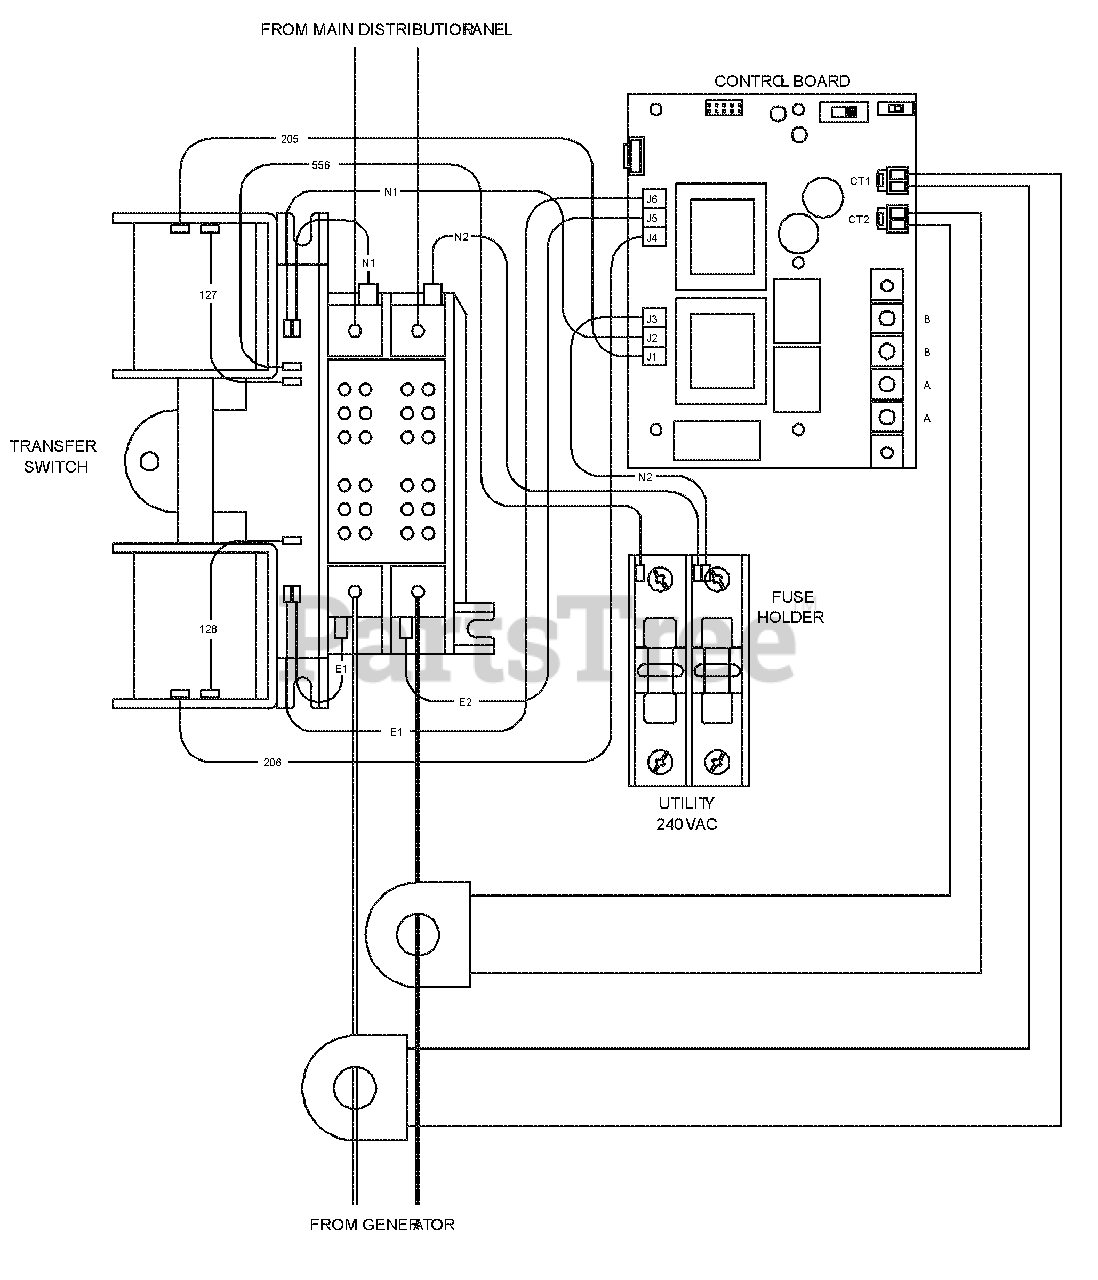 [EQHS_1162]  Briggs & Stratton 040475-00 - Briggs & Stratton 16kW Home Standby Generator  with 100 Amp ATS Wiring Diagram - Transfer Switch (198756WD) Parts Lookup  with Diagrams | PartsTree | Briggs And Stratton Transfer Switch Wiring Diagram |  | PartsTree